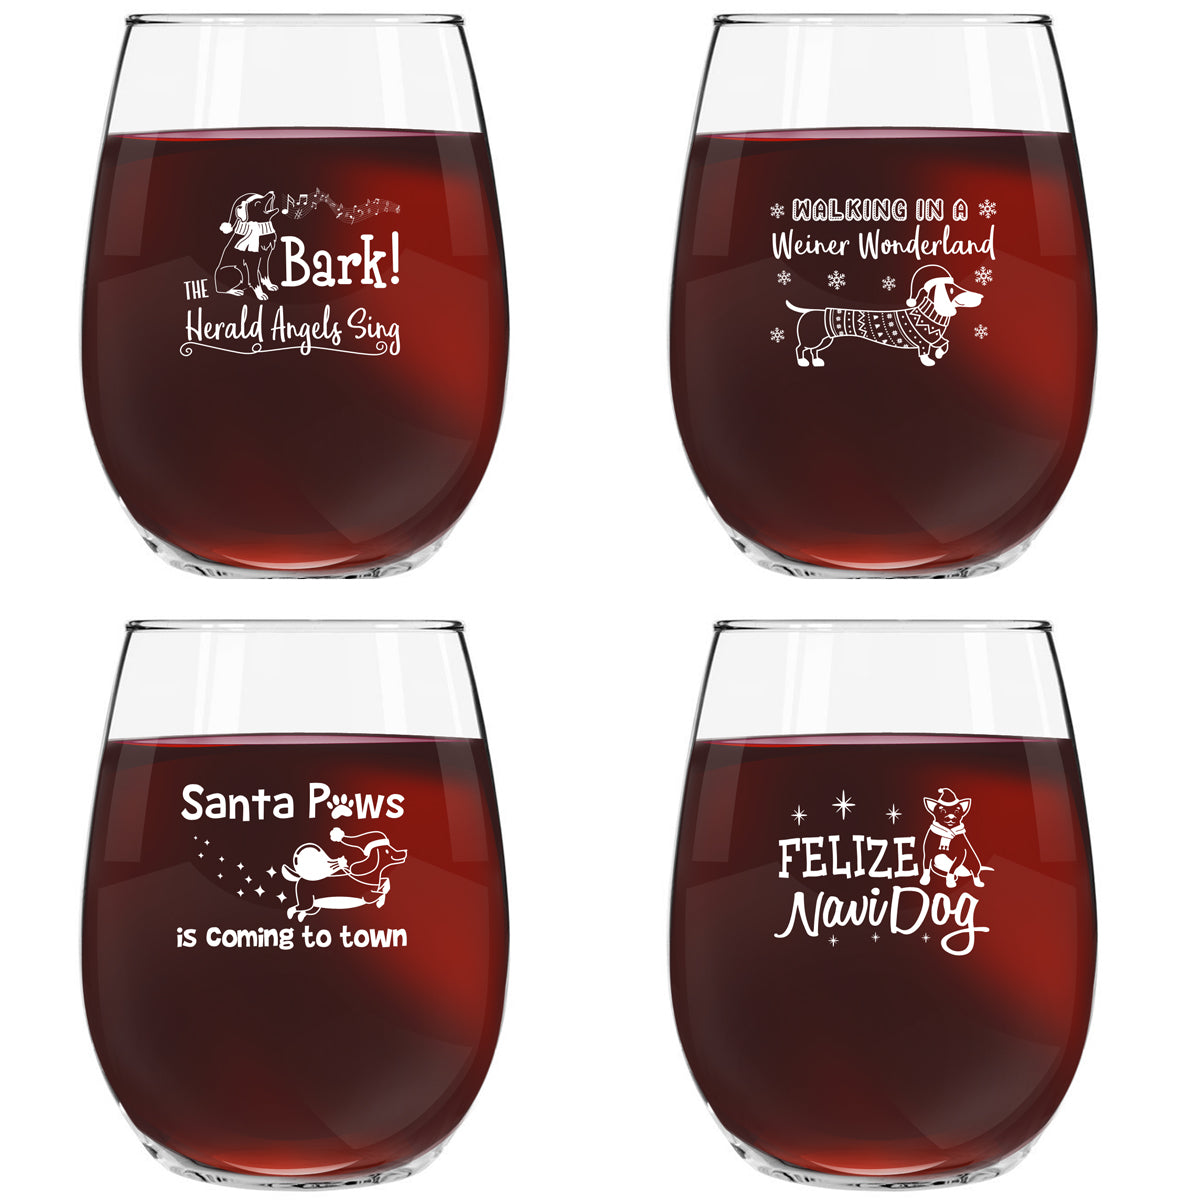 Dog Christmas Novelty Stemless Wine Glasses Set of 4 | Holiday & Santa Themed Messages for Pet Owners & Wine Lovers | 15 oz. Funny Dog Wine Glass with Cute Messages | Gift Exchange Idea for Xmas